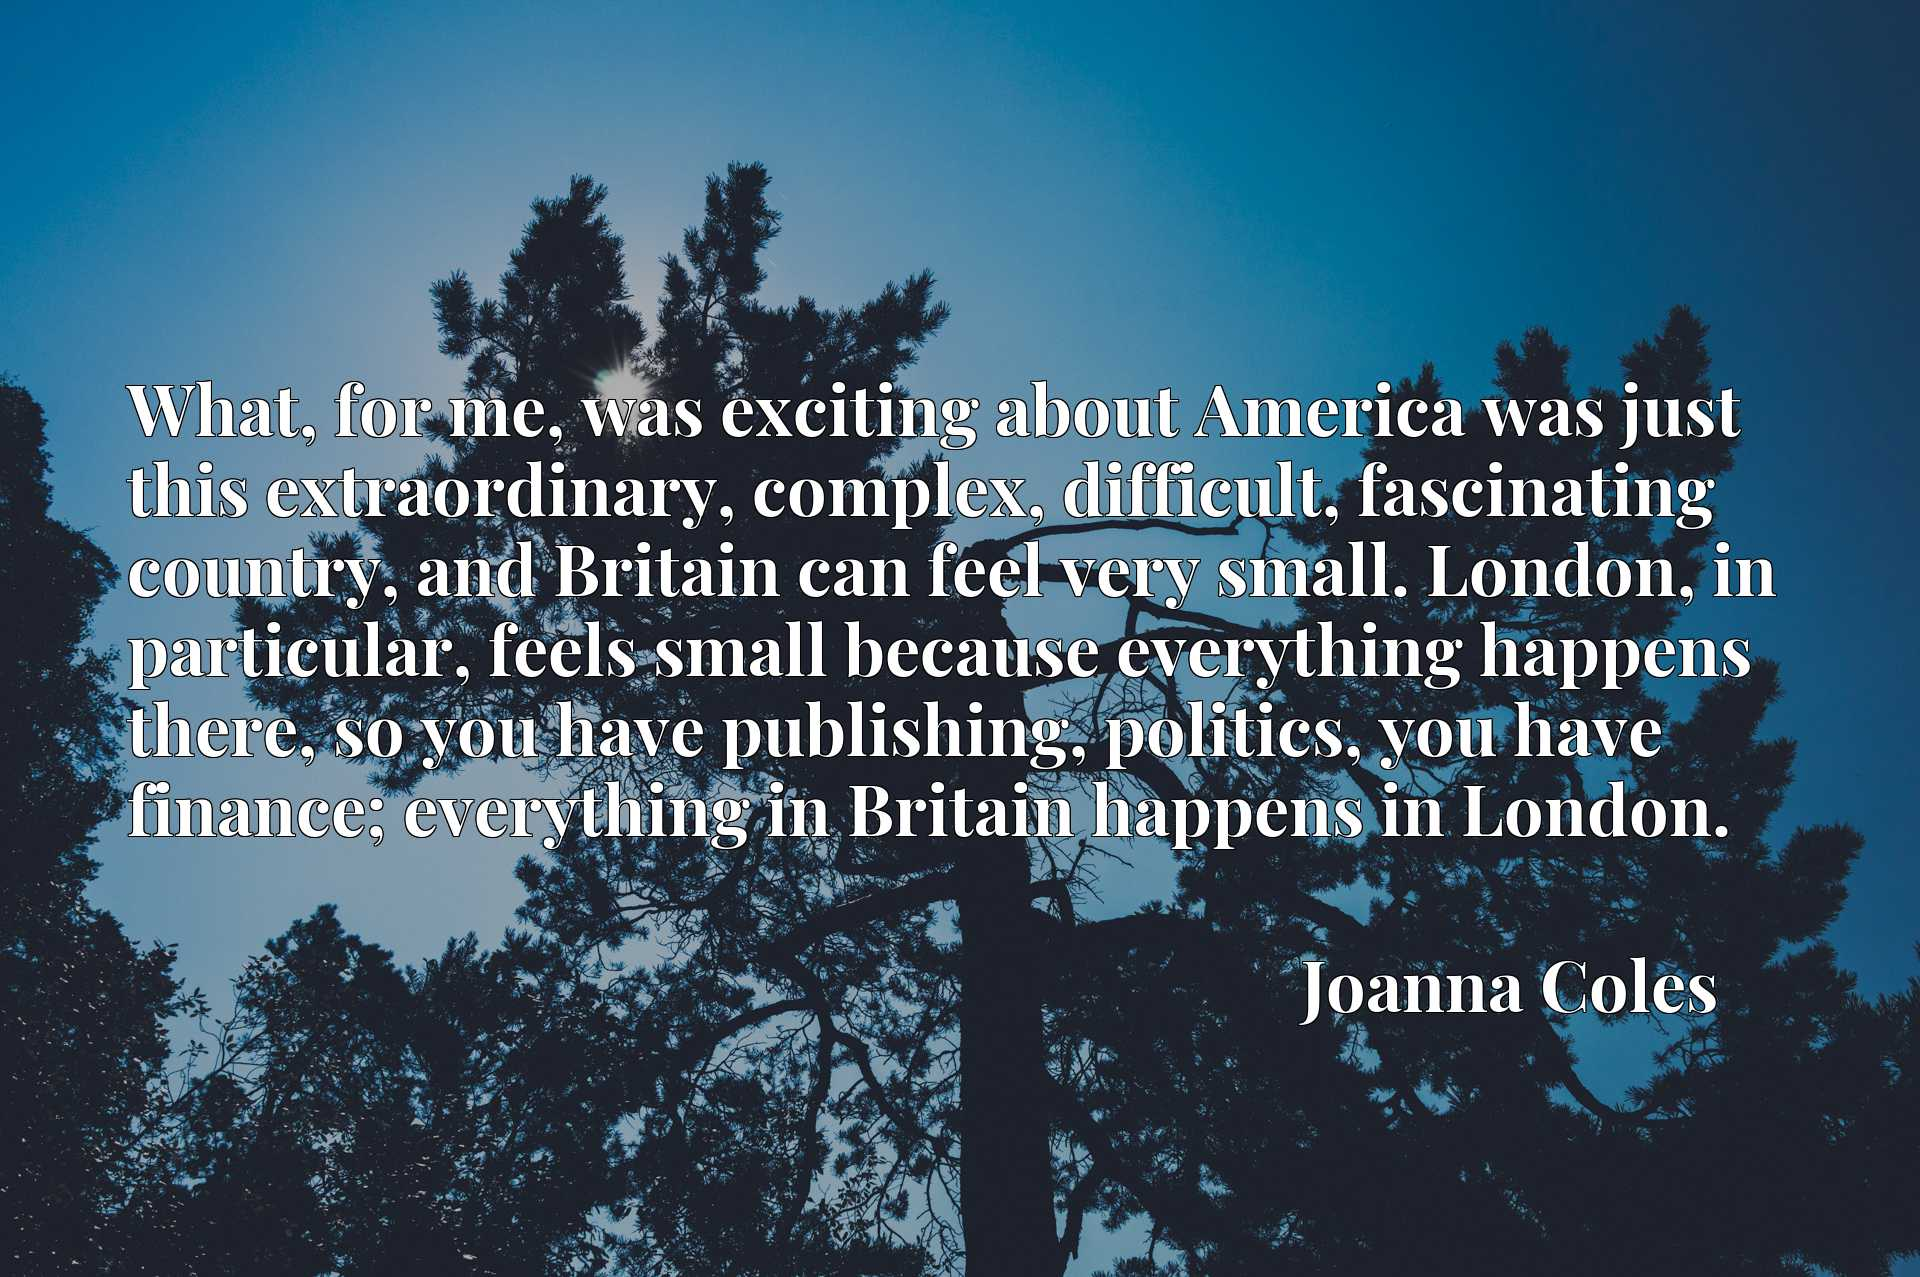 What, for me, was exciting about America was just this extraordinary, complex, difficult, fascinating country, and Britain can feel very small. London, in particular, feels small because everything happens there, so you have publishing, politics, you have finance; everything in Britain happens in London.